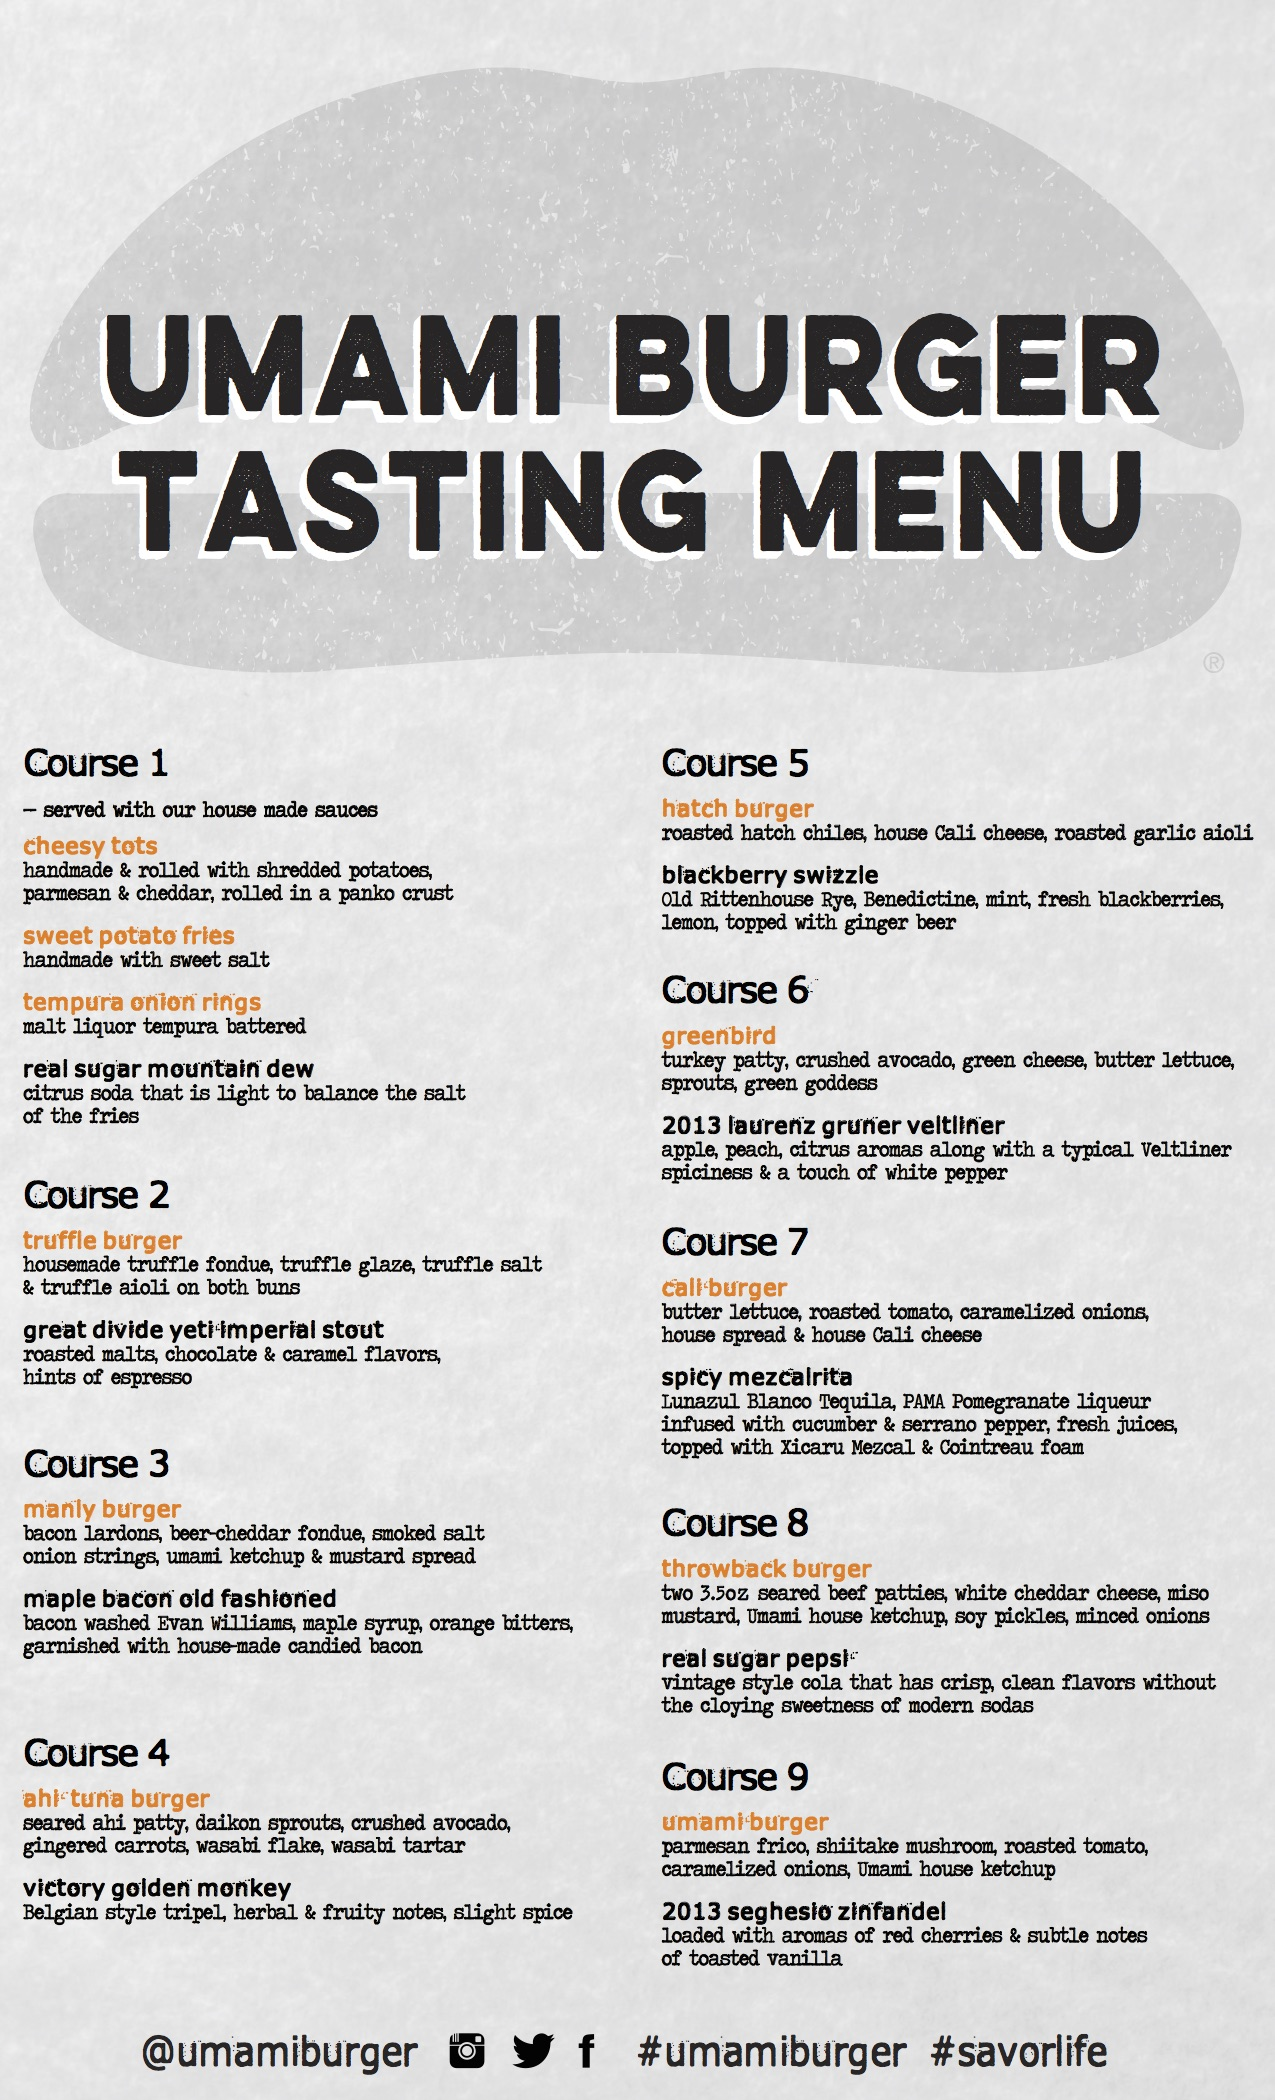 Umami burger's 9- course tasting menu. Not to be taken lightly! Make sure you come hungry!